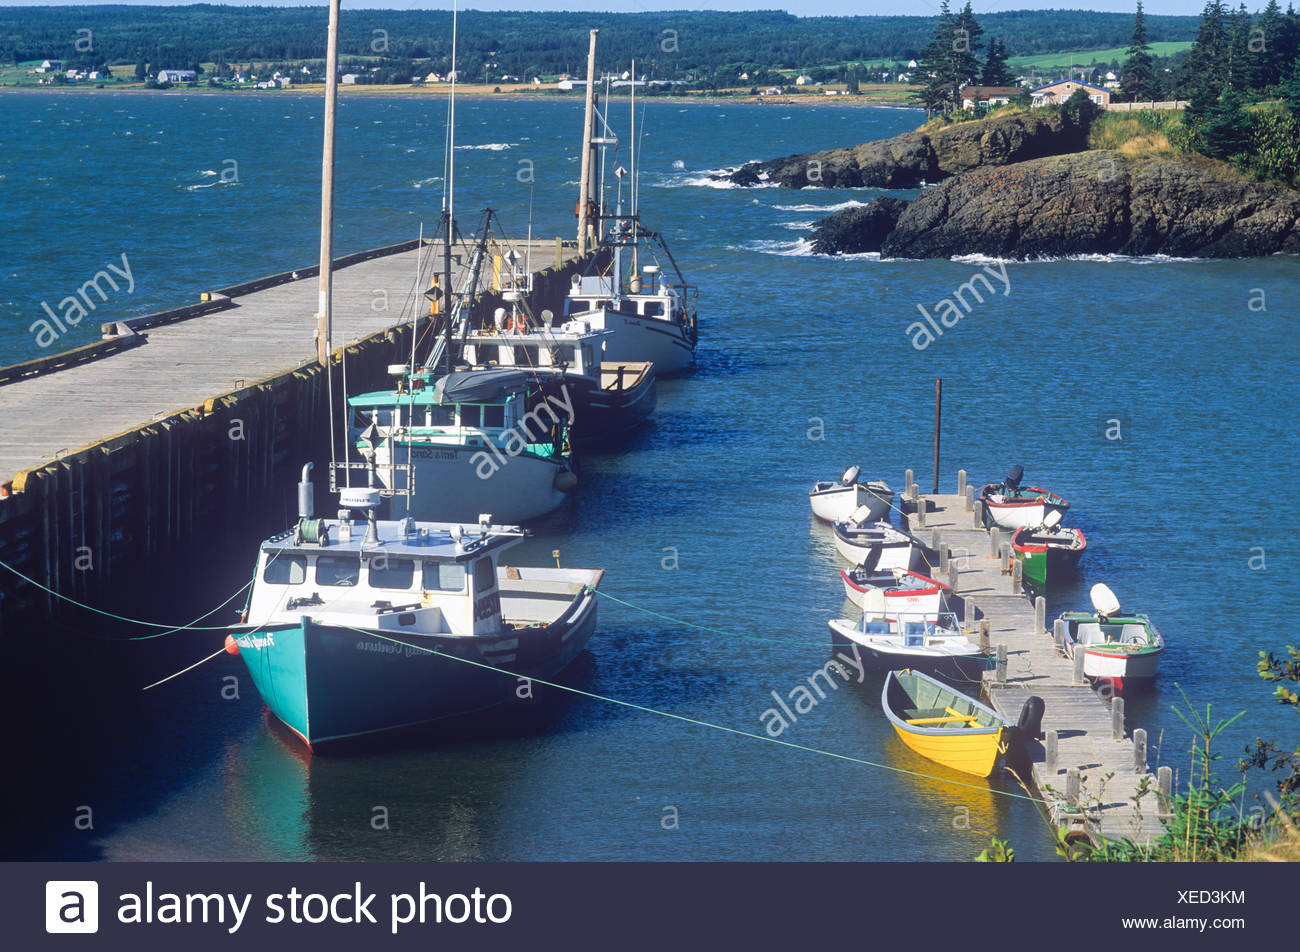 Fishing boats tied up at Baxters Harbour, Nova Scotia Canada - Stock Image